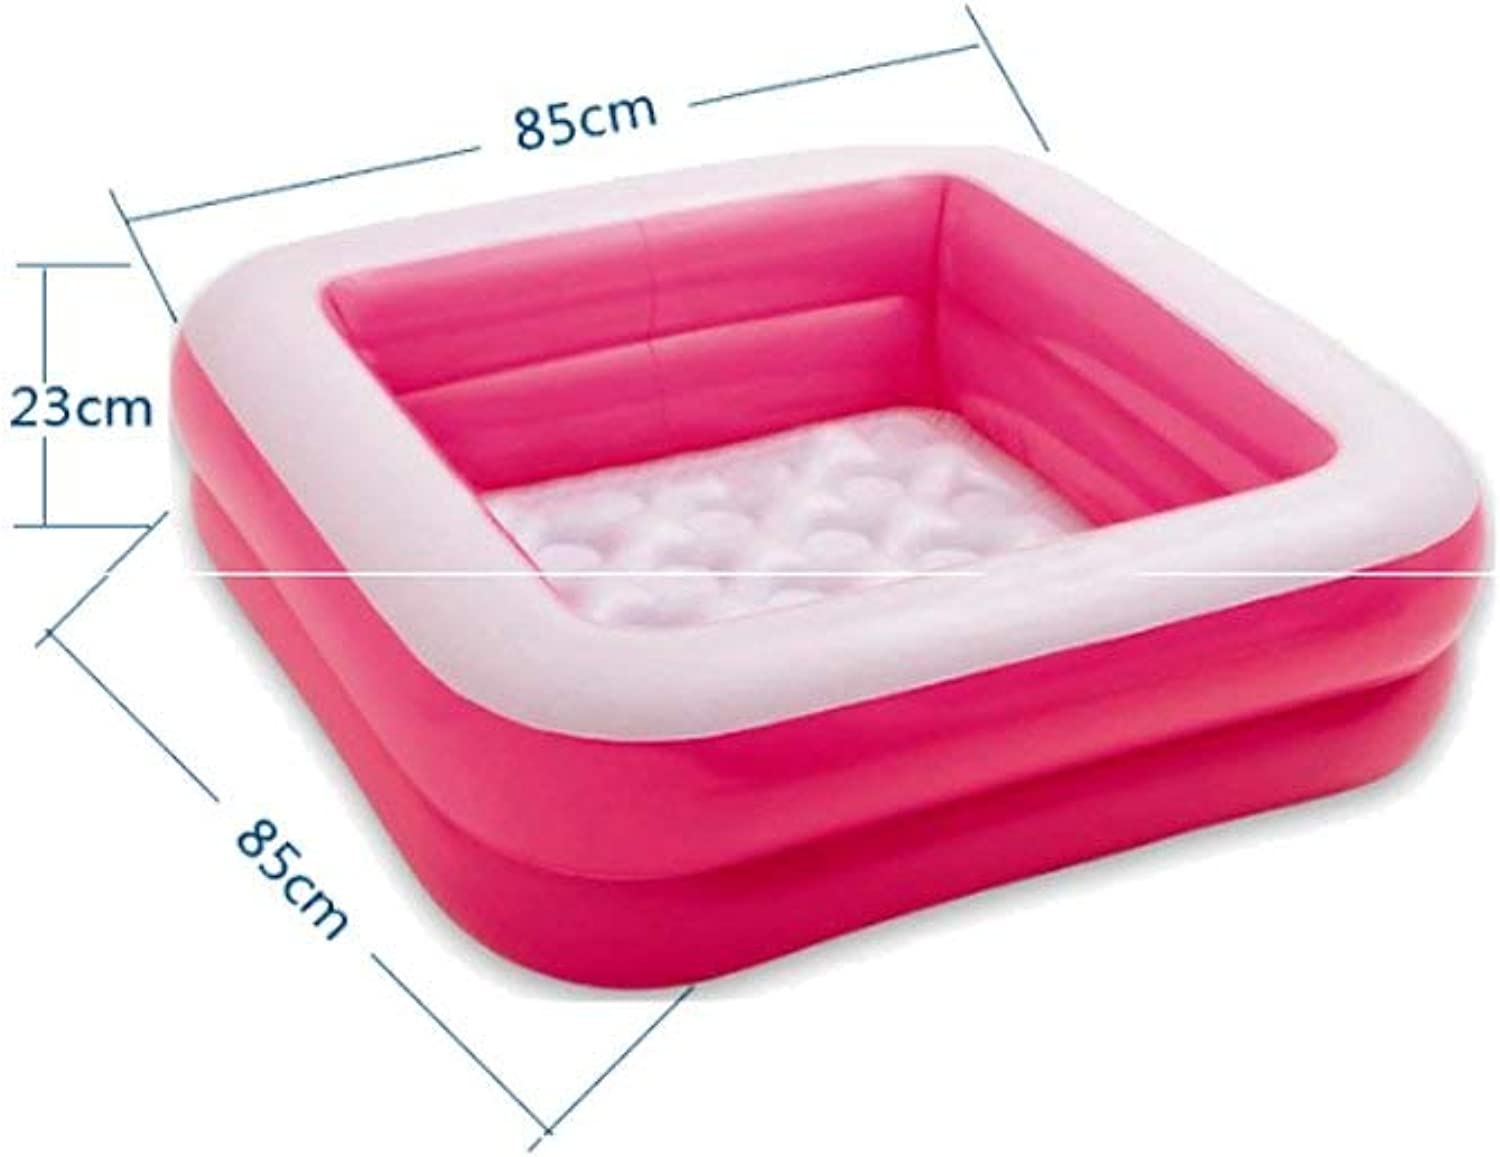 GFF Inflatable swimming pool floor Inflatable swimming pool Insulation Inflatable swimming pool Inflatable swimming pool PVC85  23cm (color  PINK)